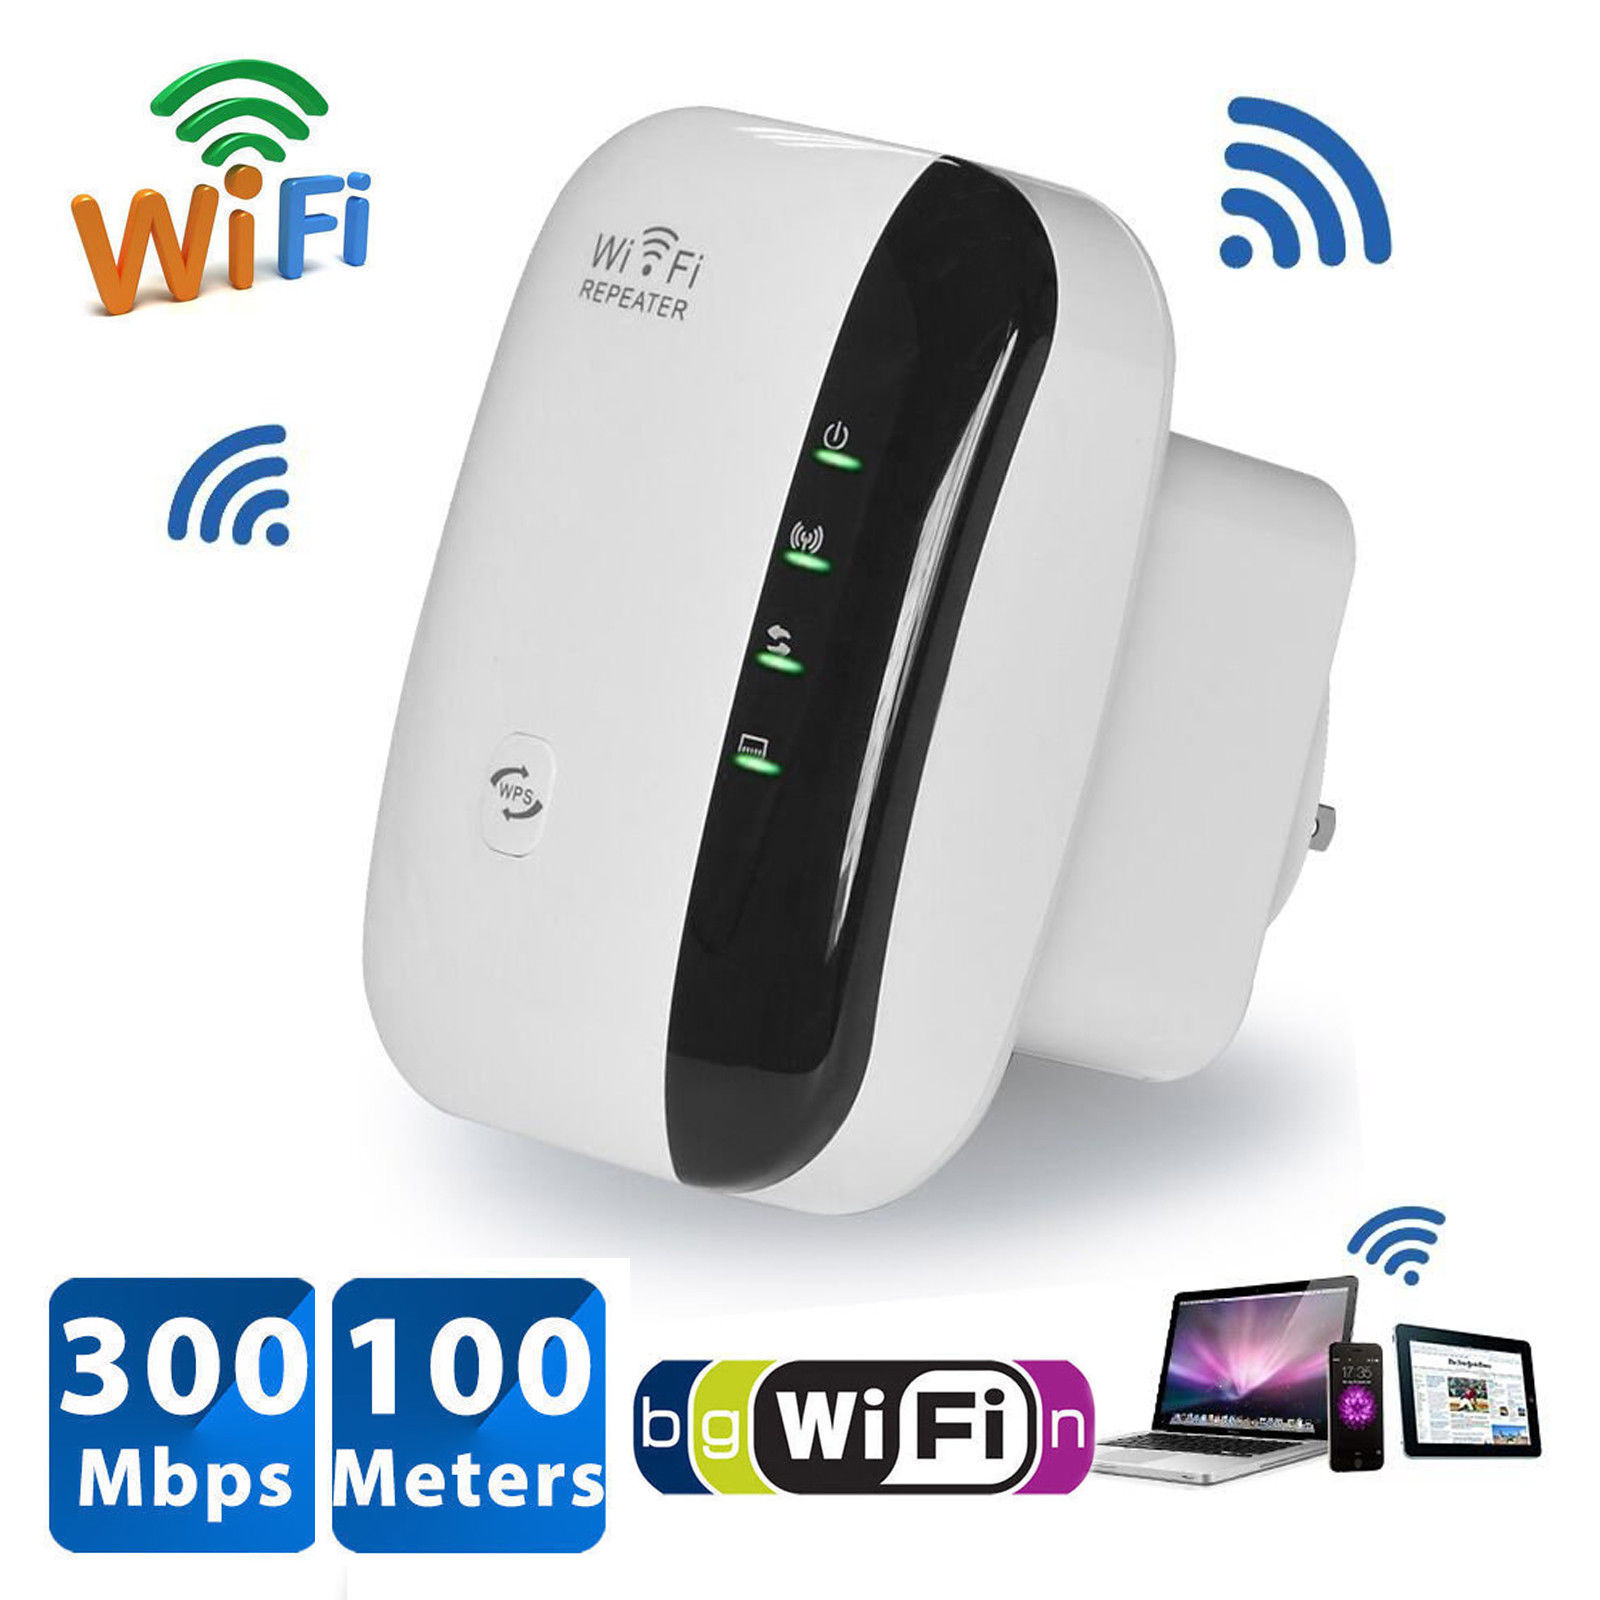 300Mbps-Wireless-N-AP-Range-802-11-Wifi-Repeater-Signal-Extender-Booster-US-Plug thumbnail 14